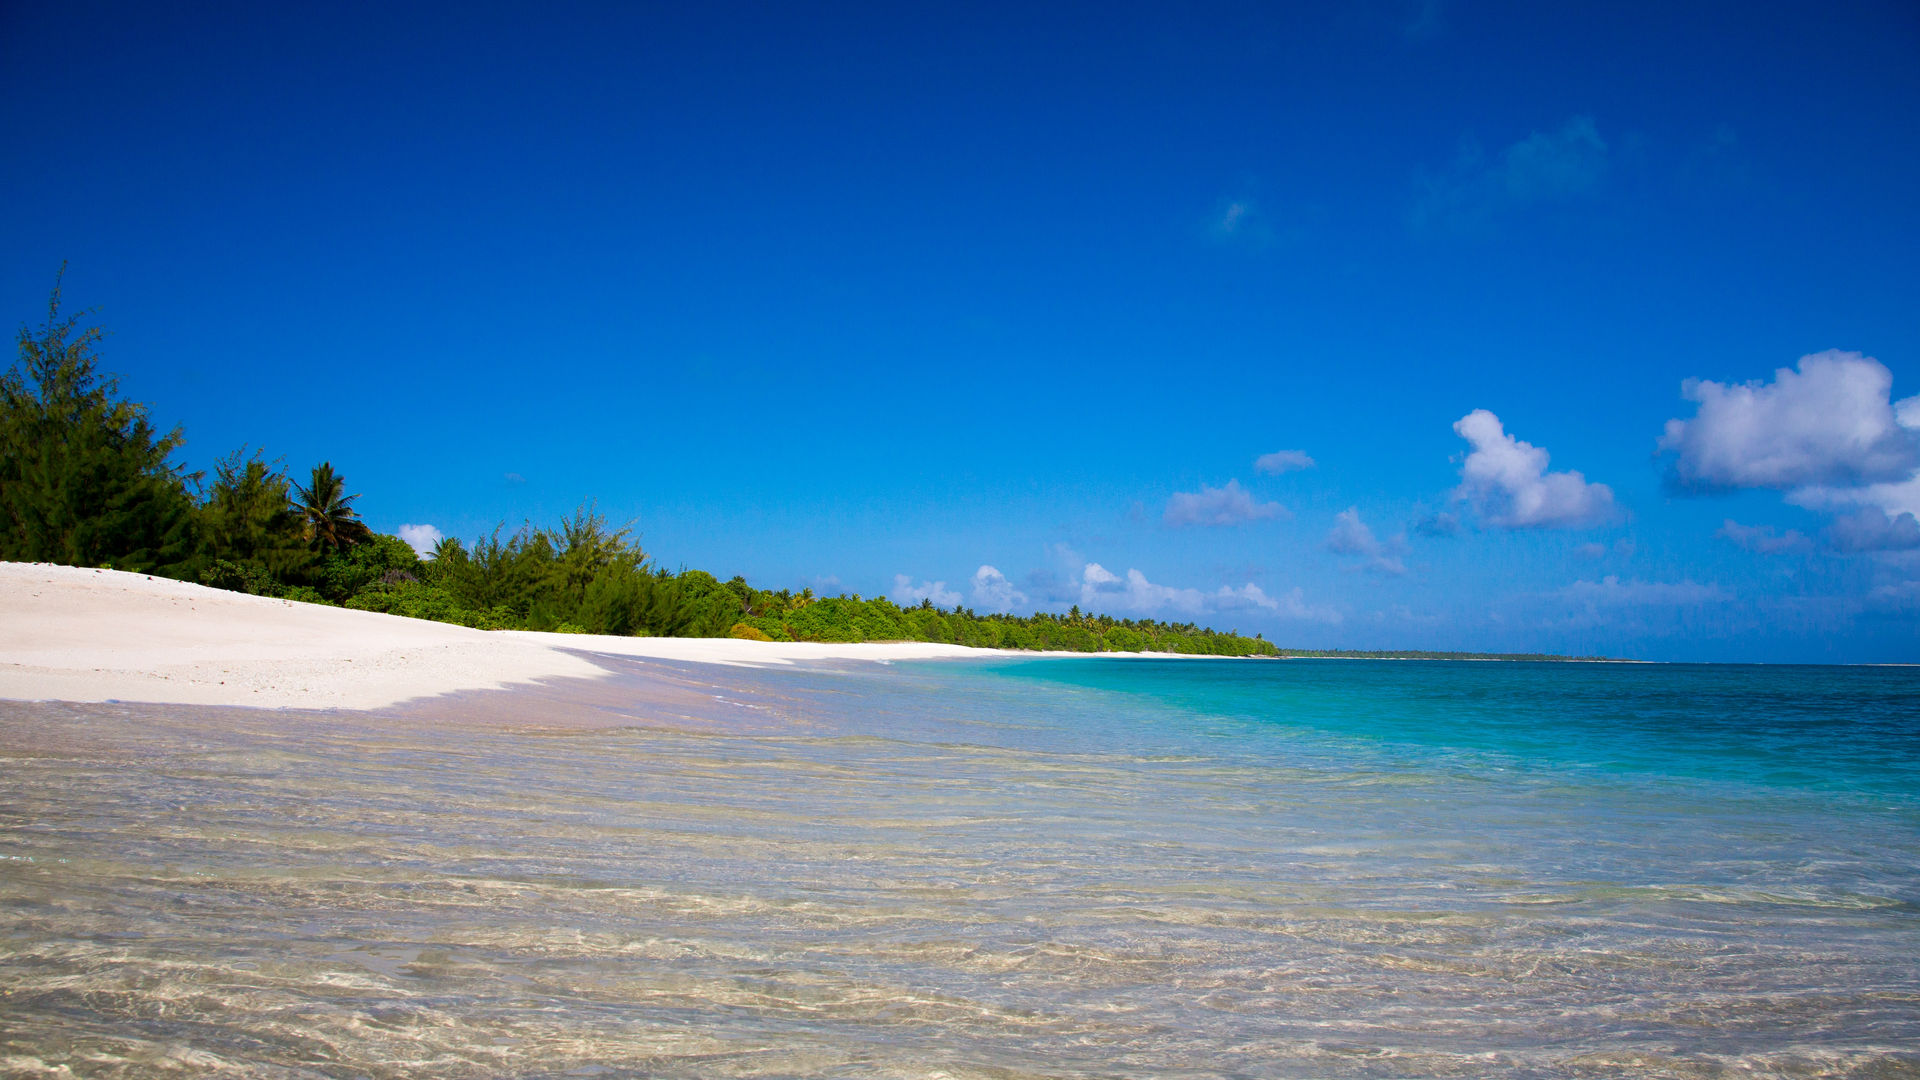 A view in Marshall Islands